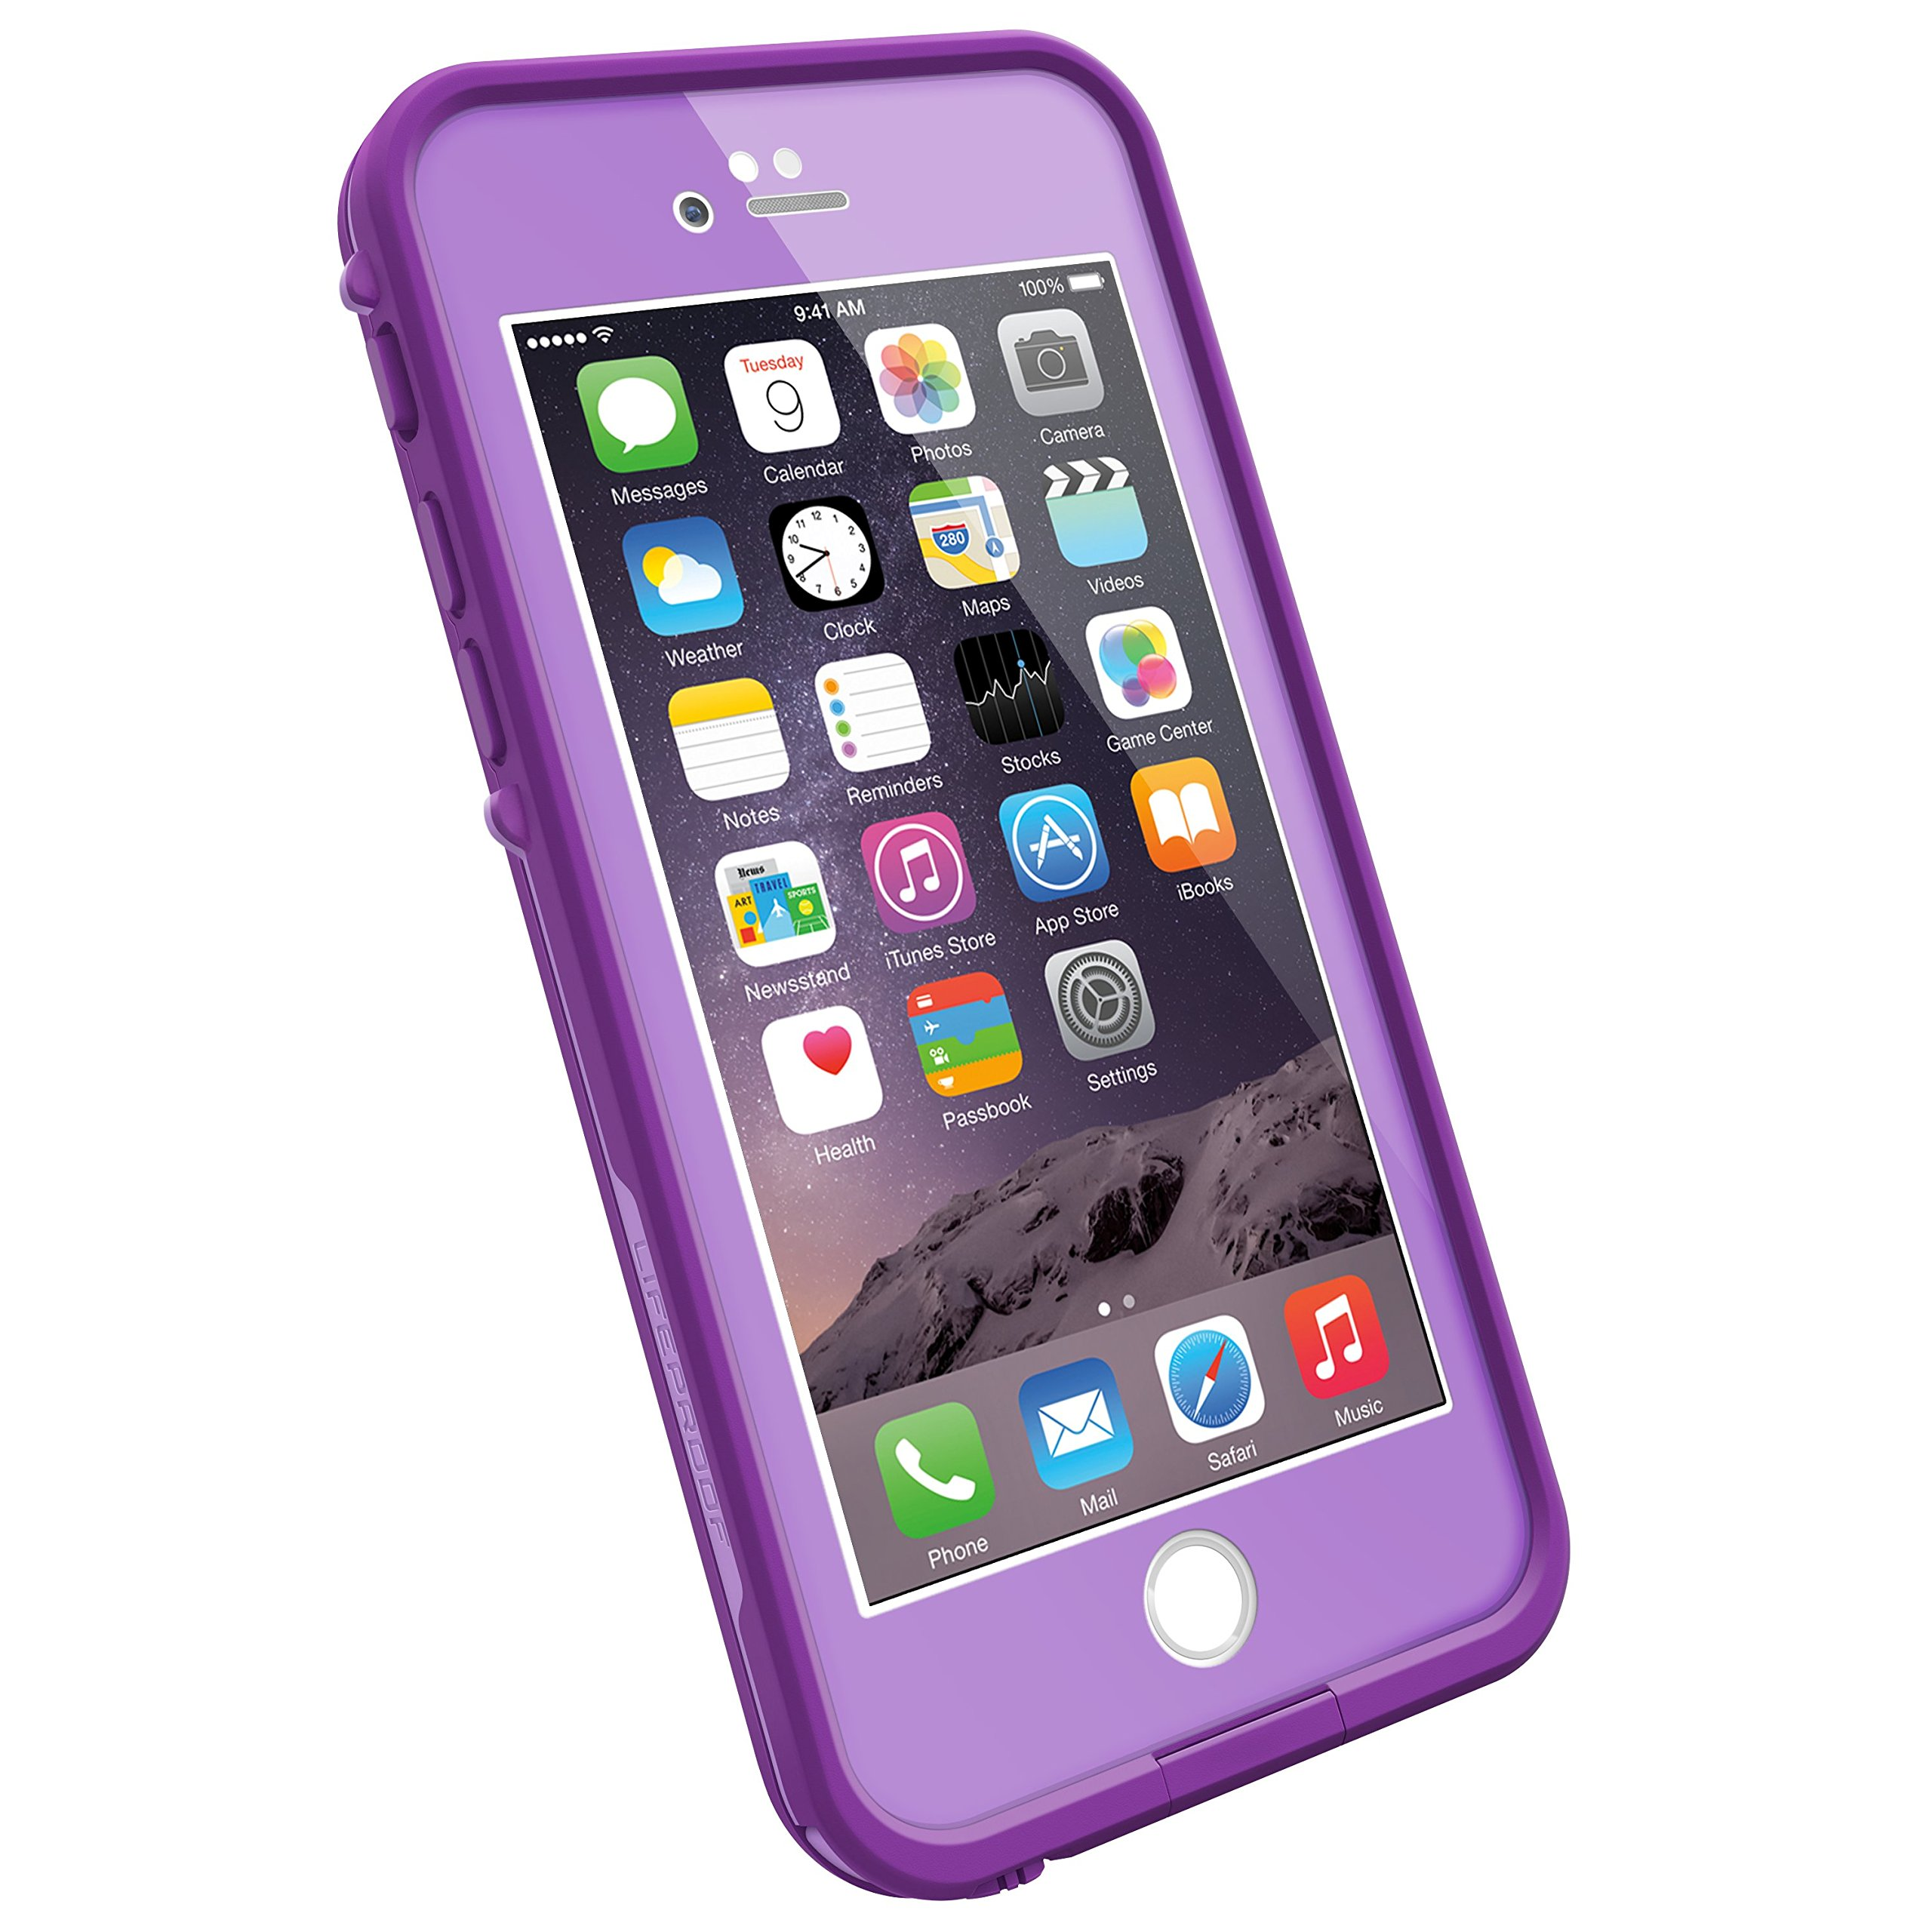 LifeProof FRE iPhone 6 ONLY Waterproof Case (4.7'' Version) - Retail Packaging - PUMPED PURPLE (LIGHT LILAC/DARK LILAC)